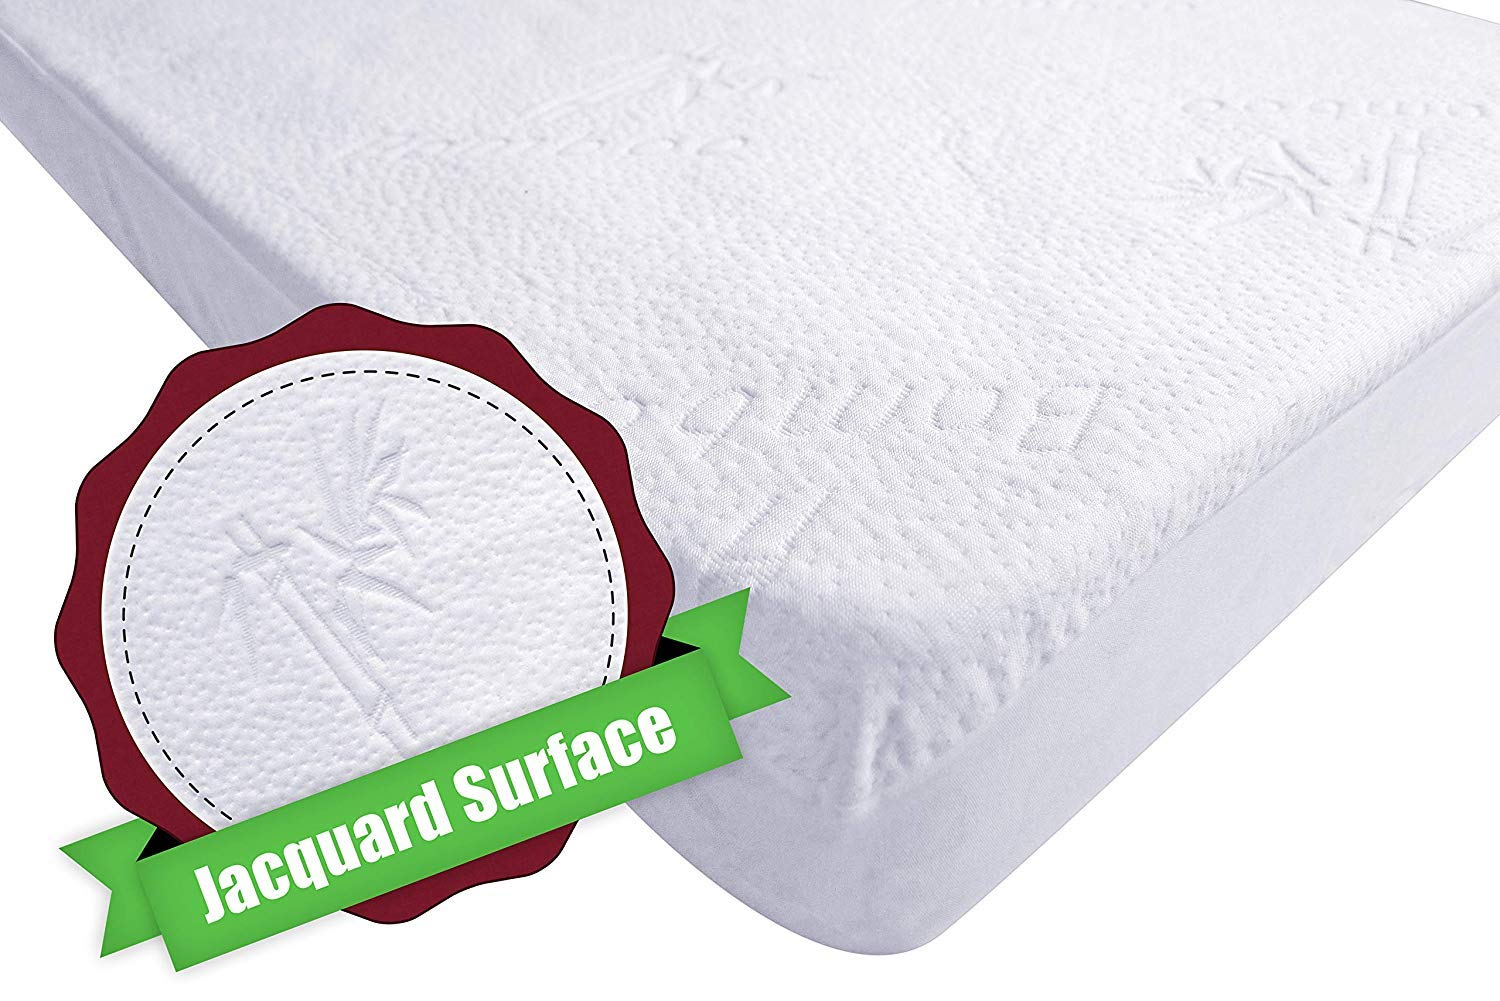 iLuvBamboo Crib Mattress Pad Protector - Waterproof Cover - Soft Natural Bamboo Jacquard Fitted Topper - Noiseless, Breathable & Hypoallergenic - Best Baby Gifts for Potty Training Toddlers & Infants by I LUV BAMBOO